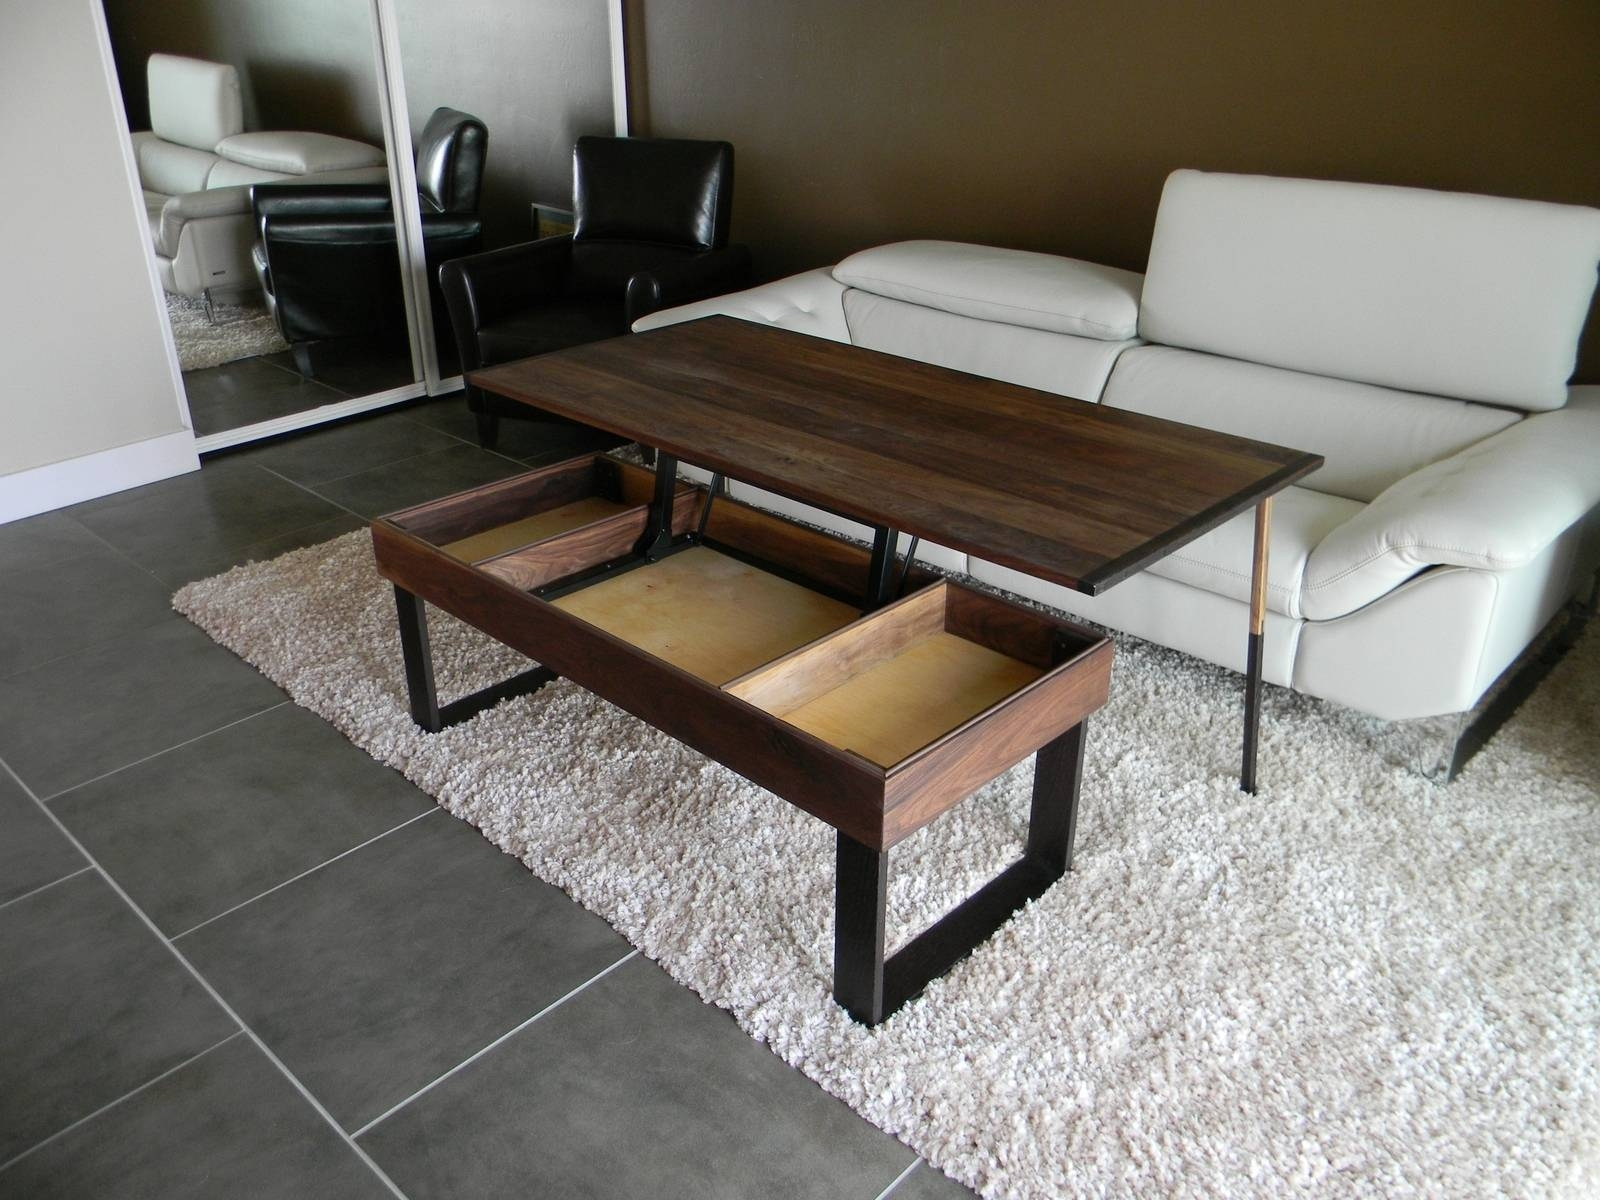 Coffee Table: Amusing Turner Lift Top Coffee Table Eespresso Lift with regard to Coffee Tables With Lift Top and Storage (Image 3 of 14)